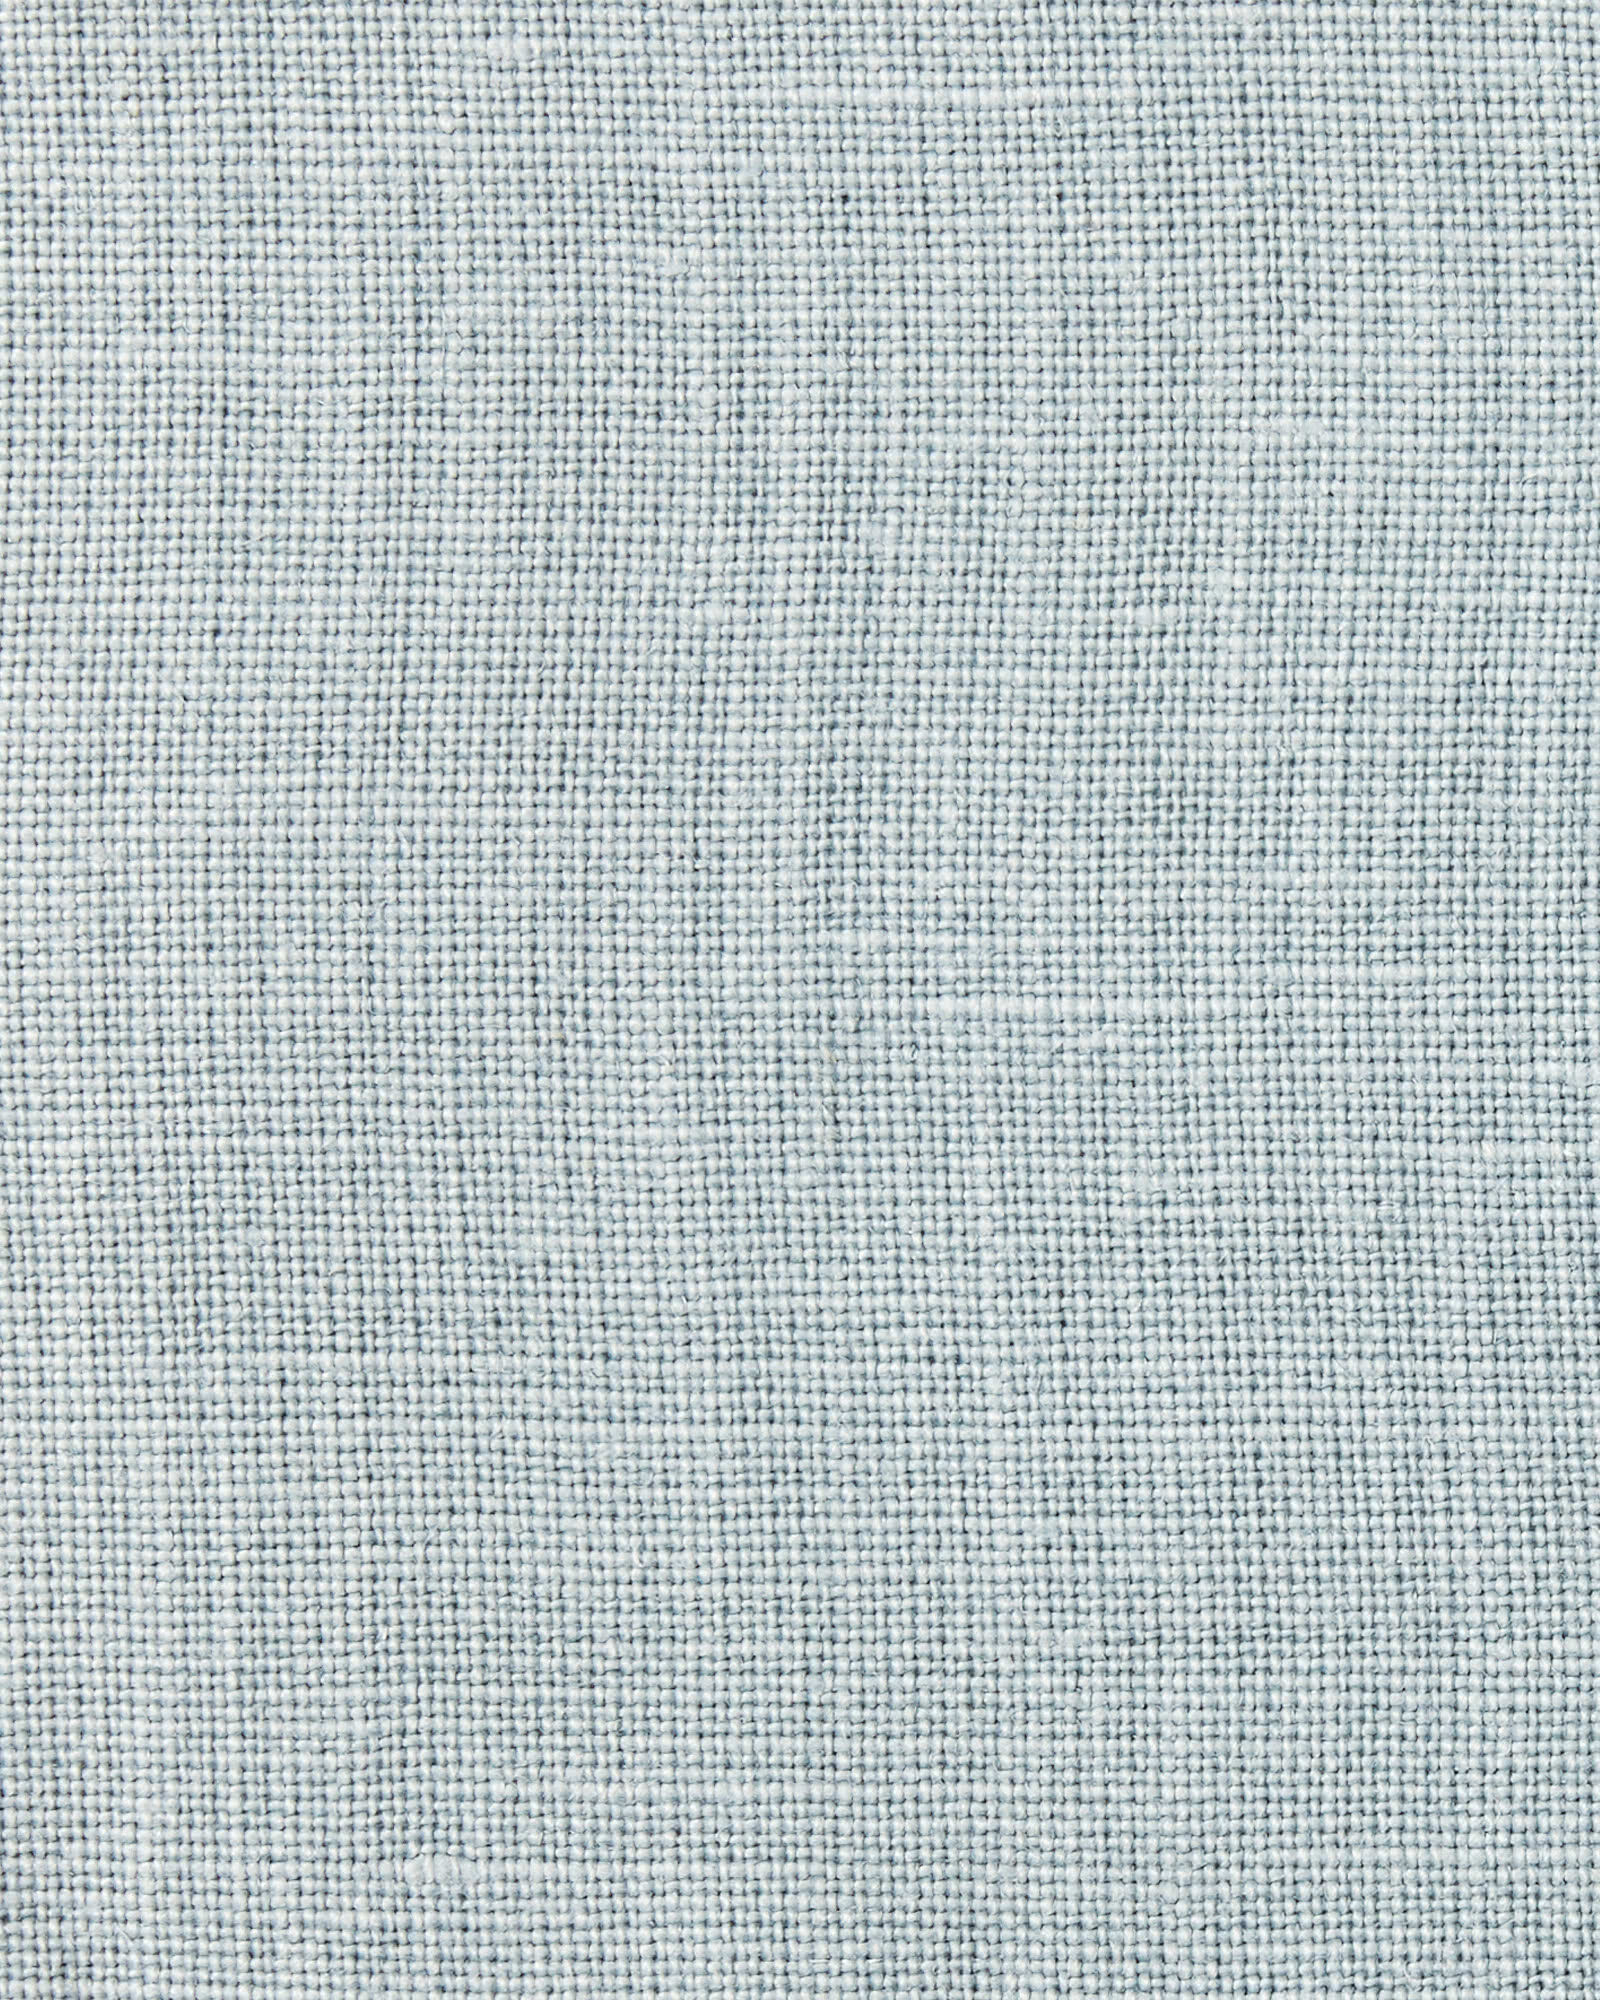 Fabric by the Yard – Washed Linen, Seaglass